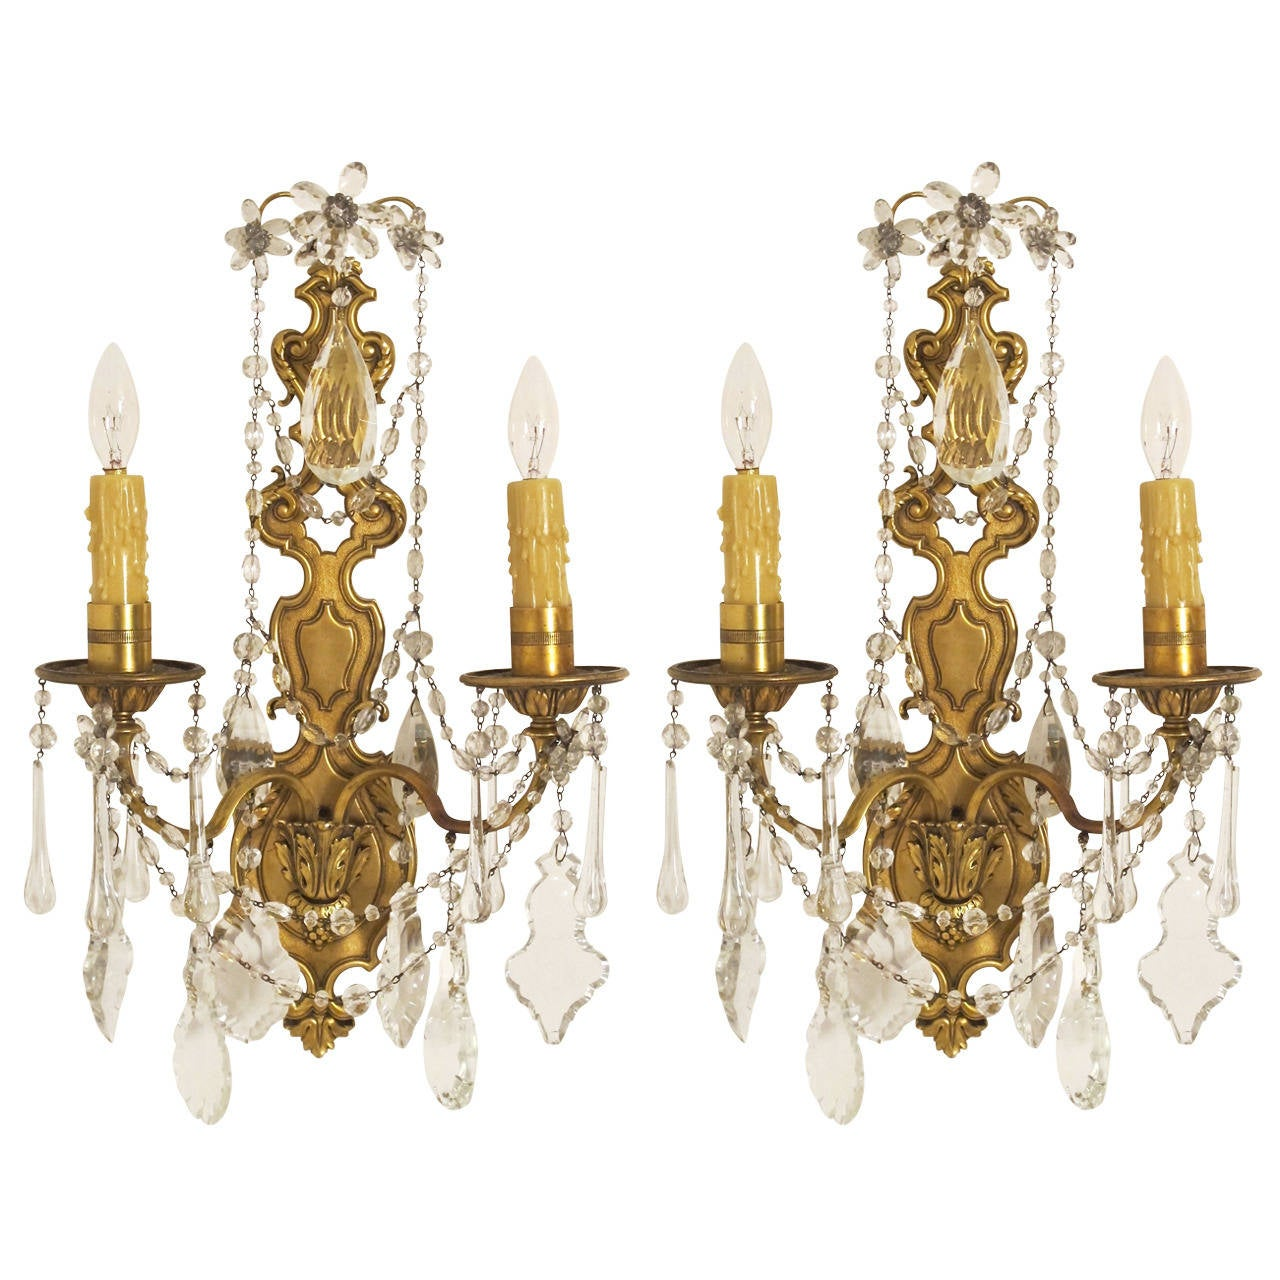 French Brass Wall Sconces : Pair 1920 s French Brass and Crystal Sconces For Sale at 1stdibs